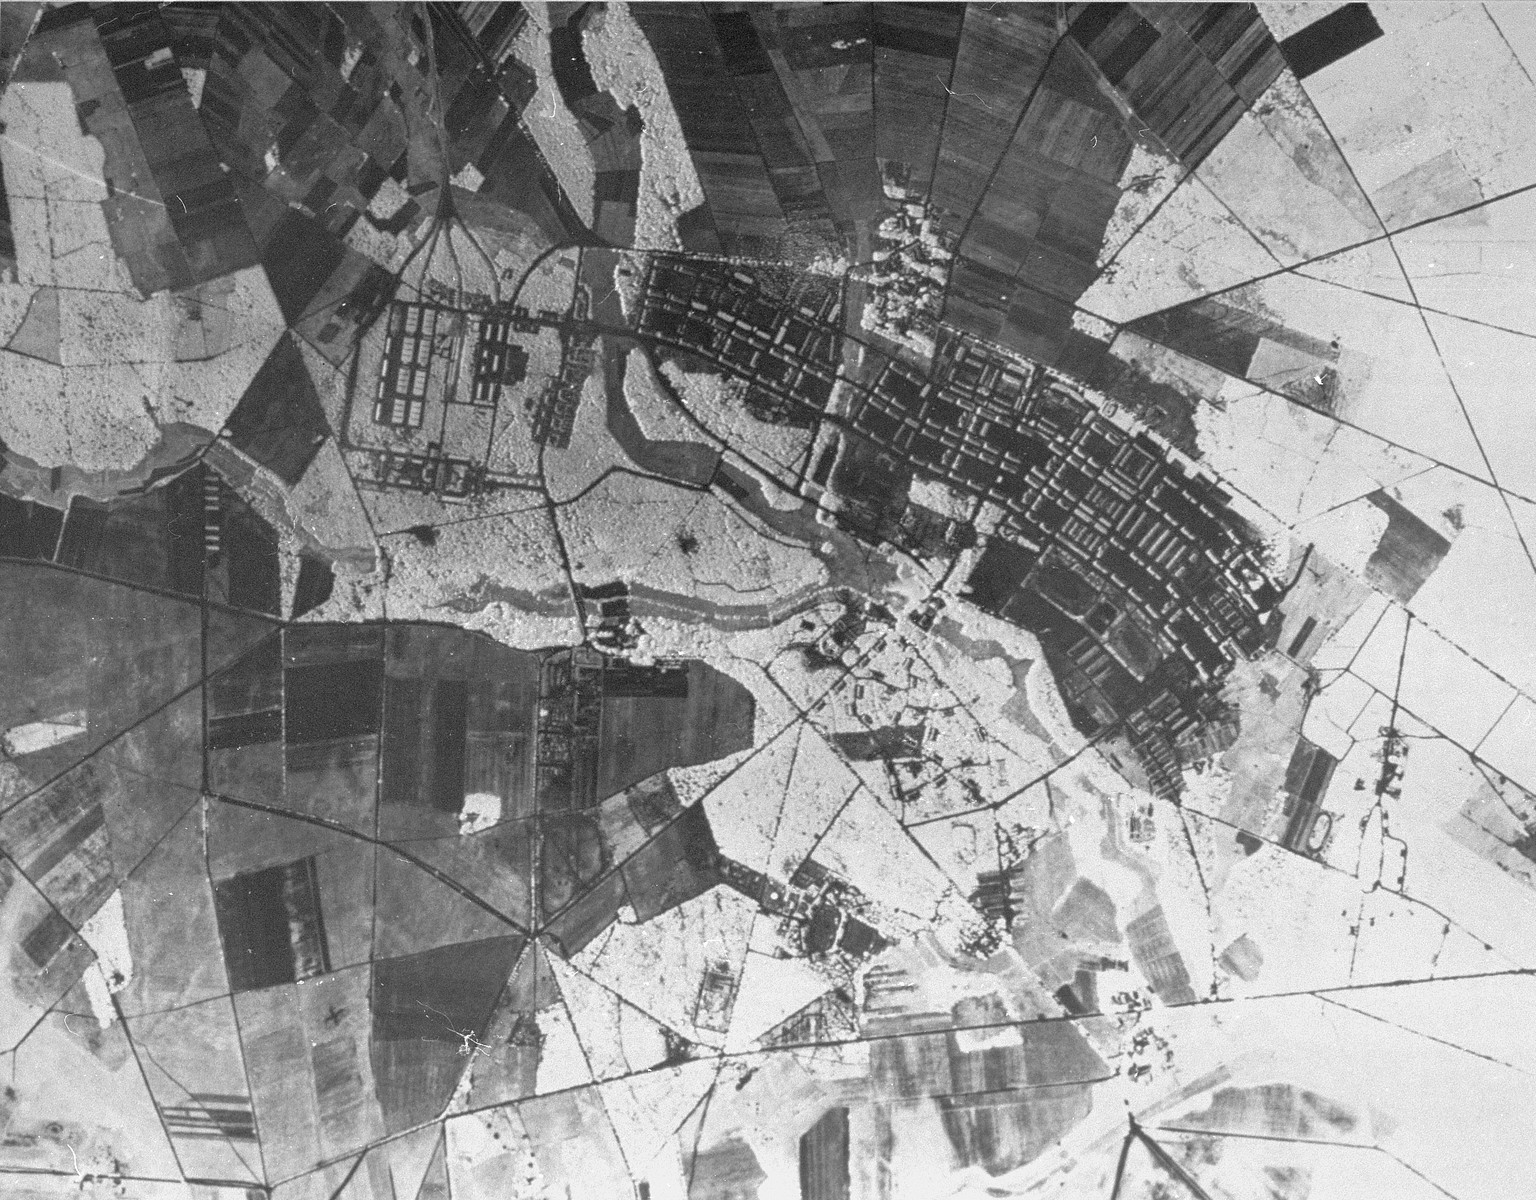 Aerial reconnaissance photograph of the Bergen-Belsen concentration camp area showing the military training base, about two kilometers northeast of the camp.